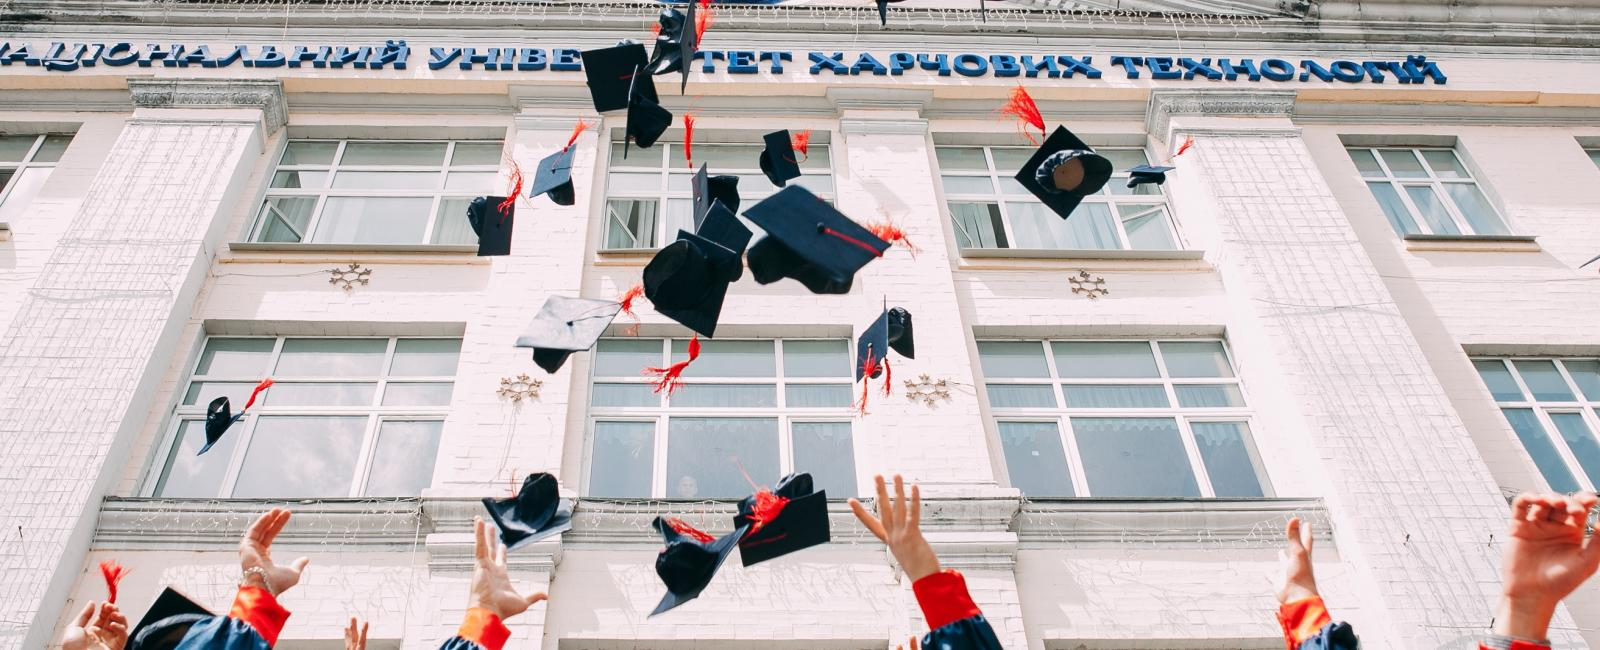 Hands throwing graduation caps in the air.